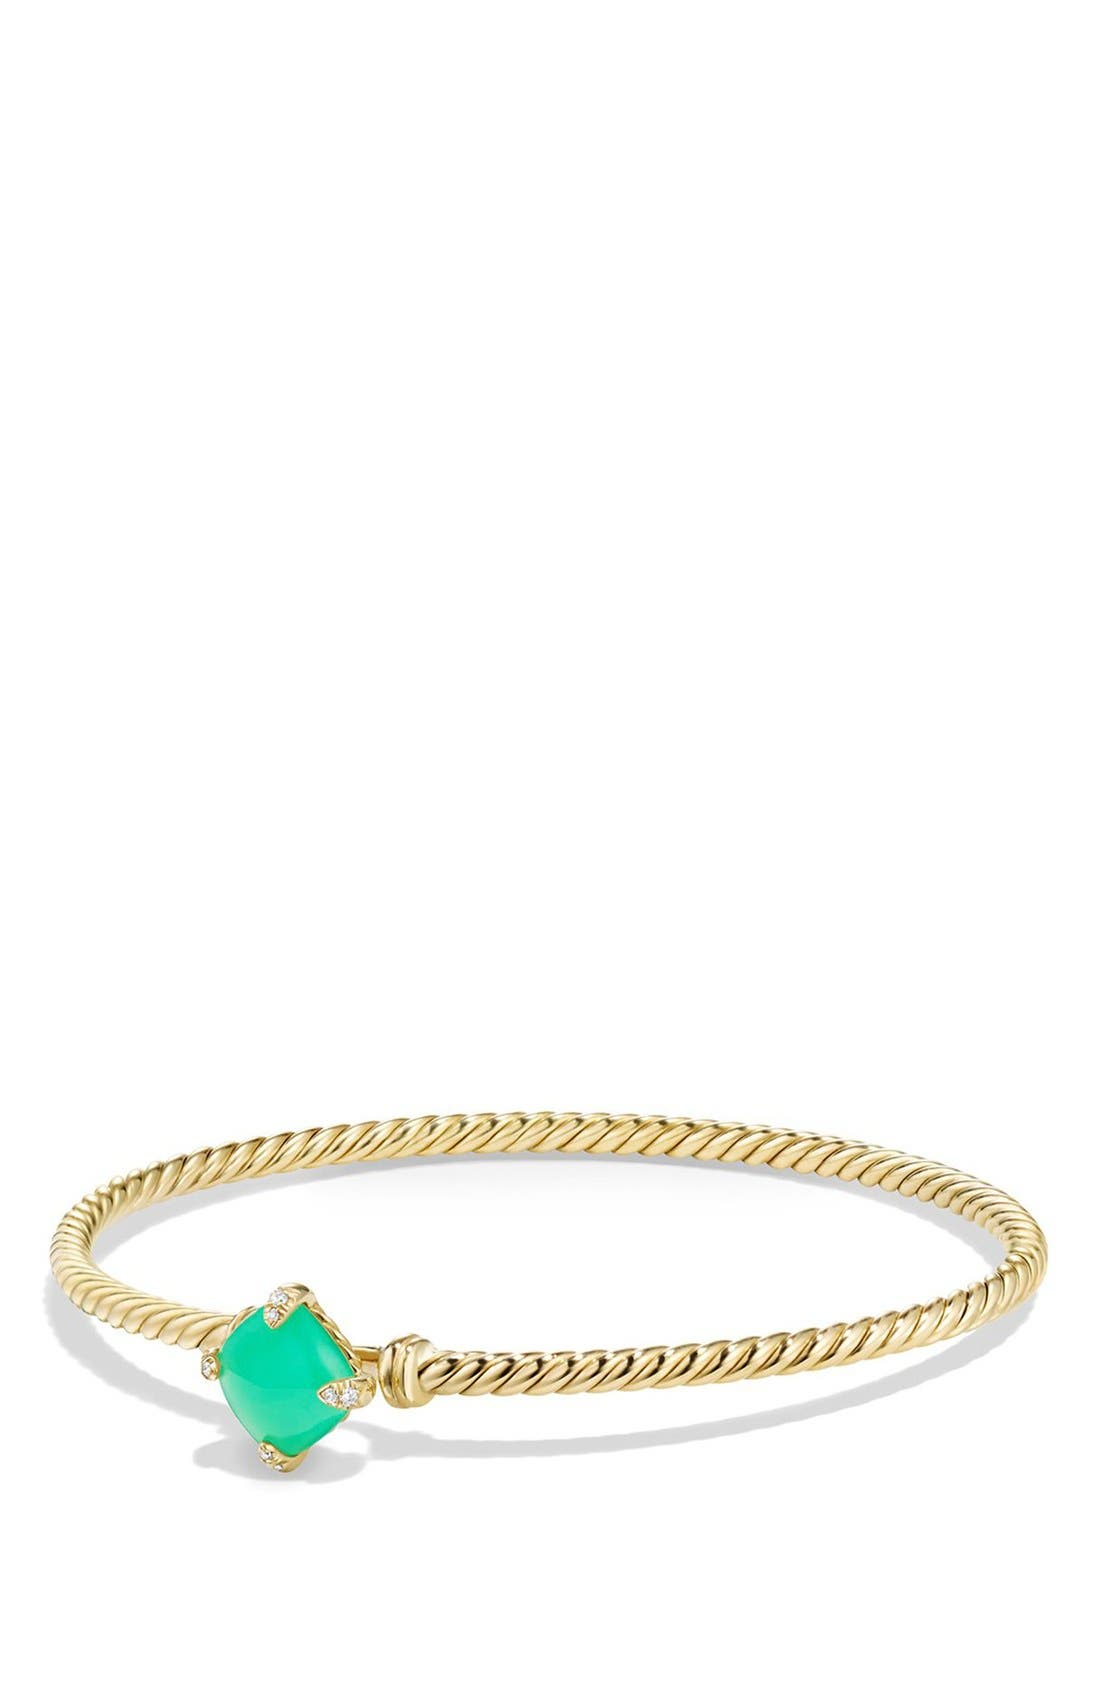 David Yurman 'Châtelaine' Bracelet in 18K Gold with Diamonds